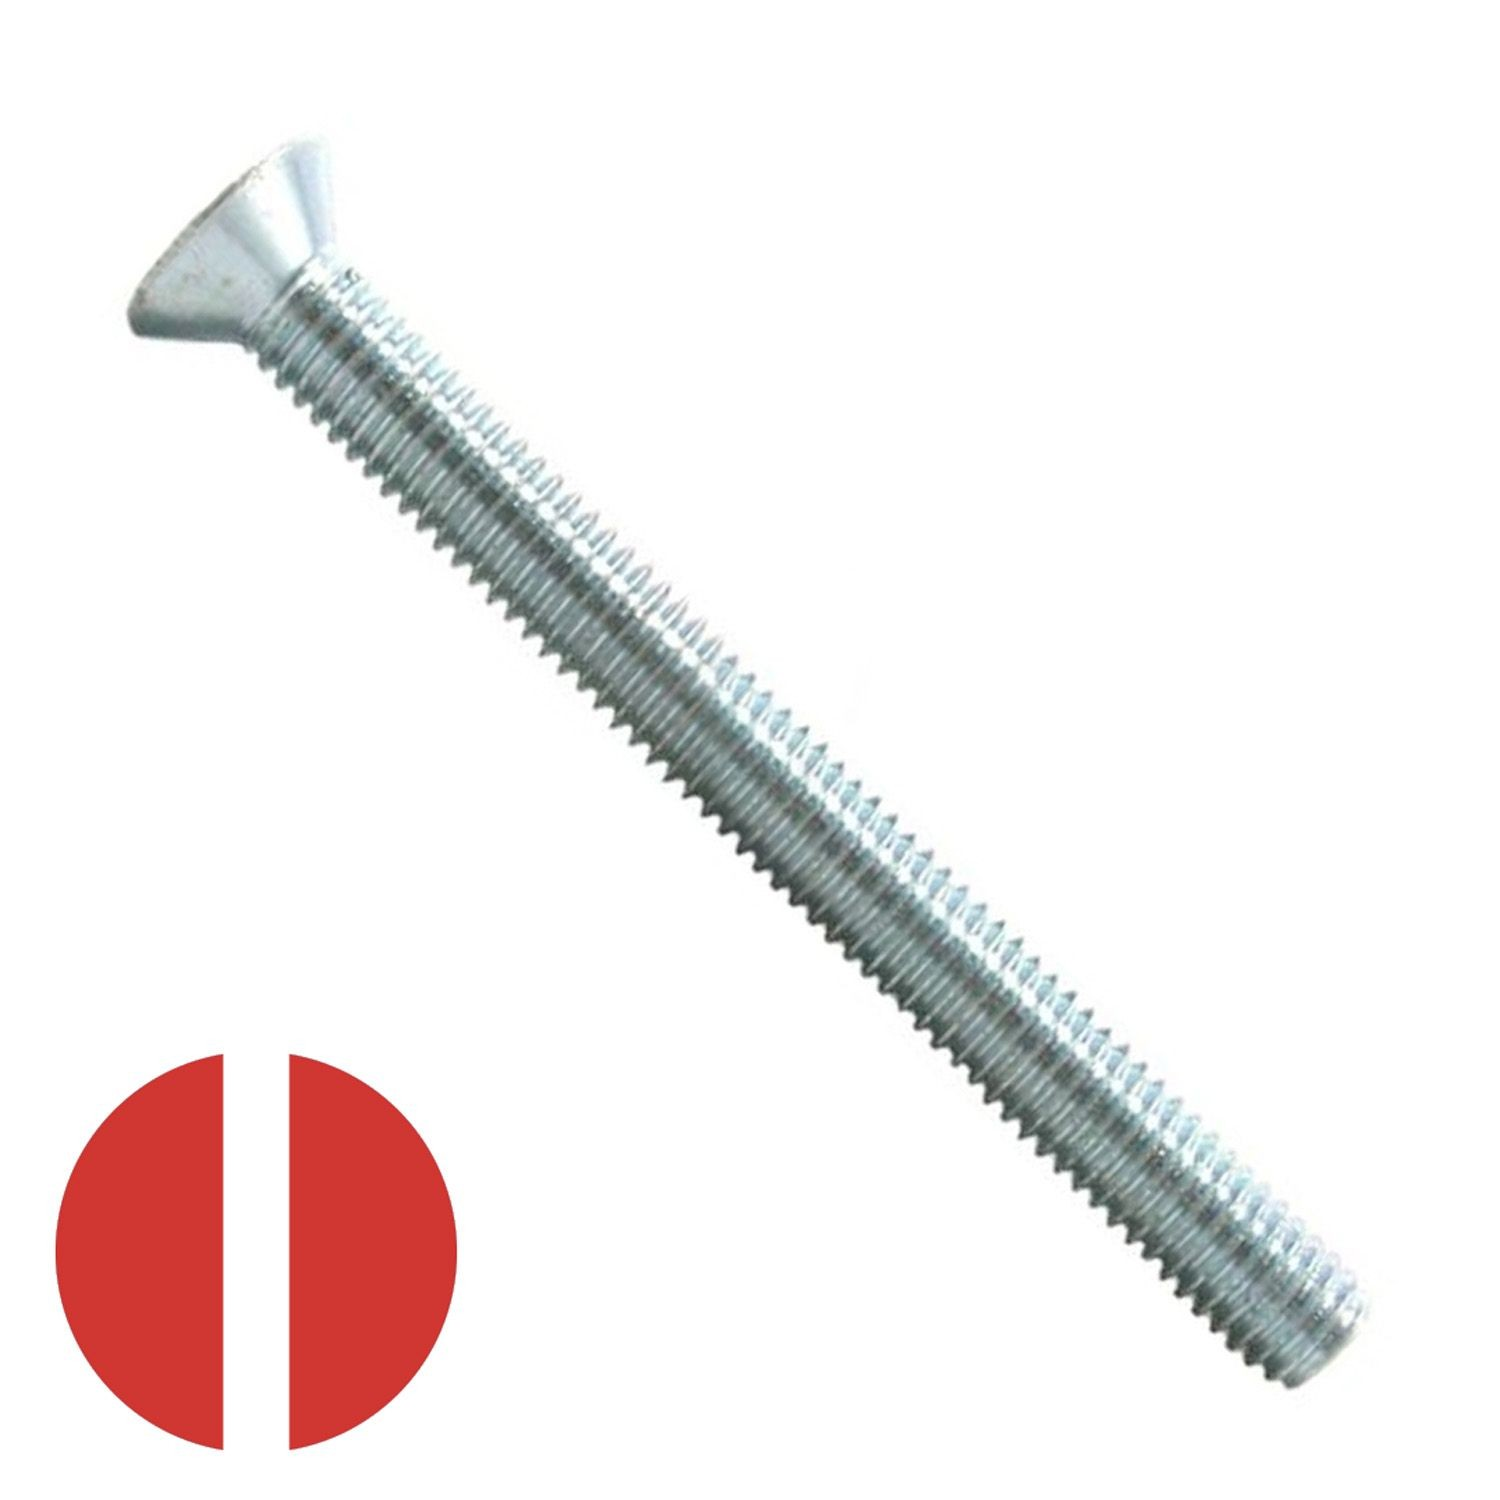 "#10-24 x 3-1/2"" Zinc Plated Slotted Flat Head Machine Screw"